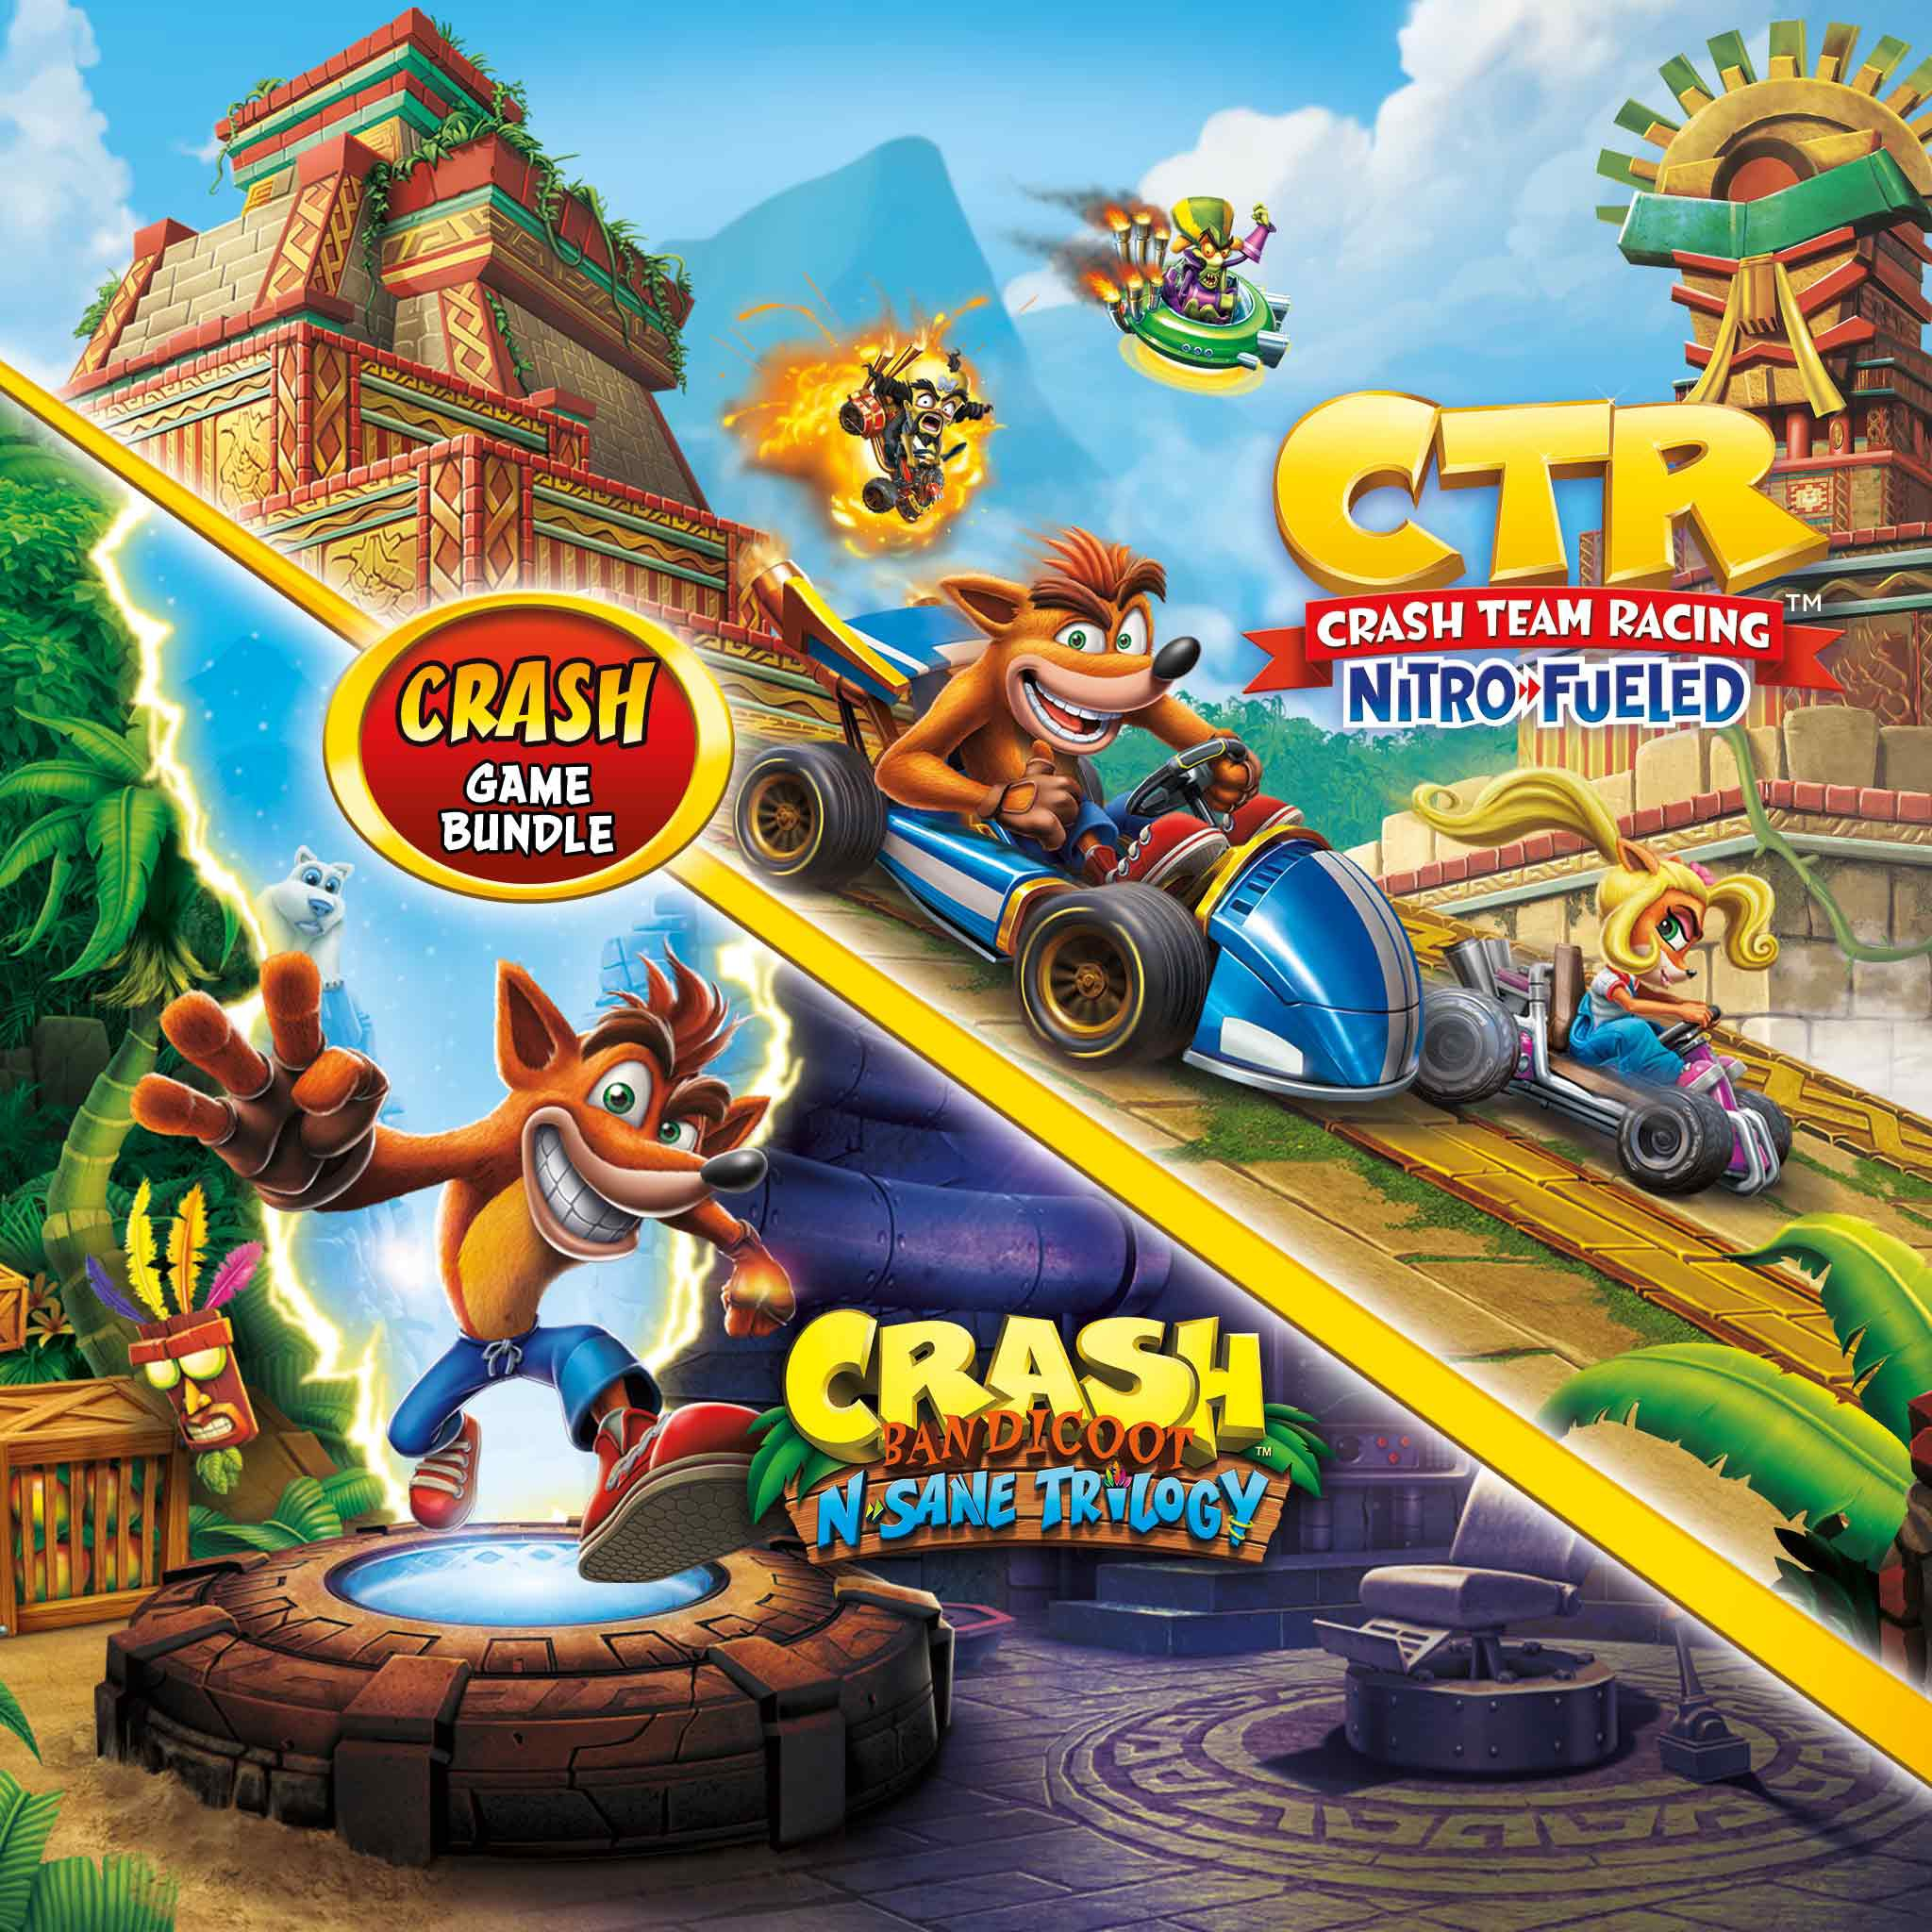 Bundle Crash Bandicoot™ - N. Sane Trilogy + CTR Nitro-Fueled